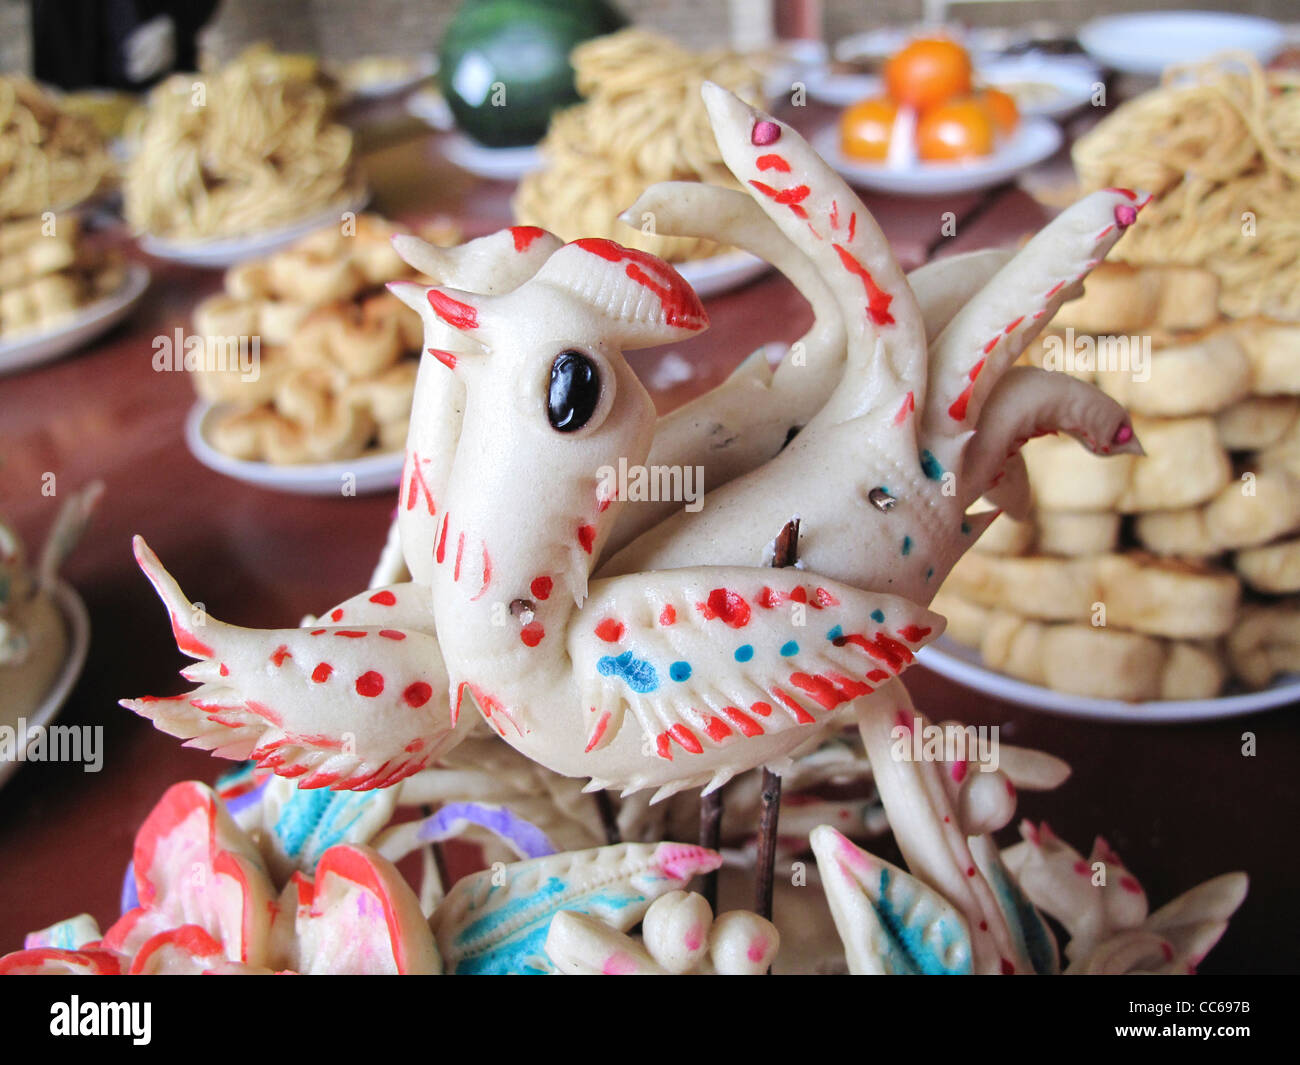 Dough models of fish, Linfen, Shanxi , China - Stock Image